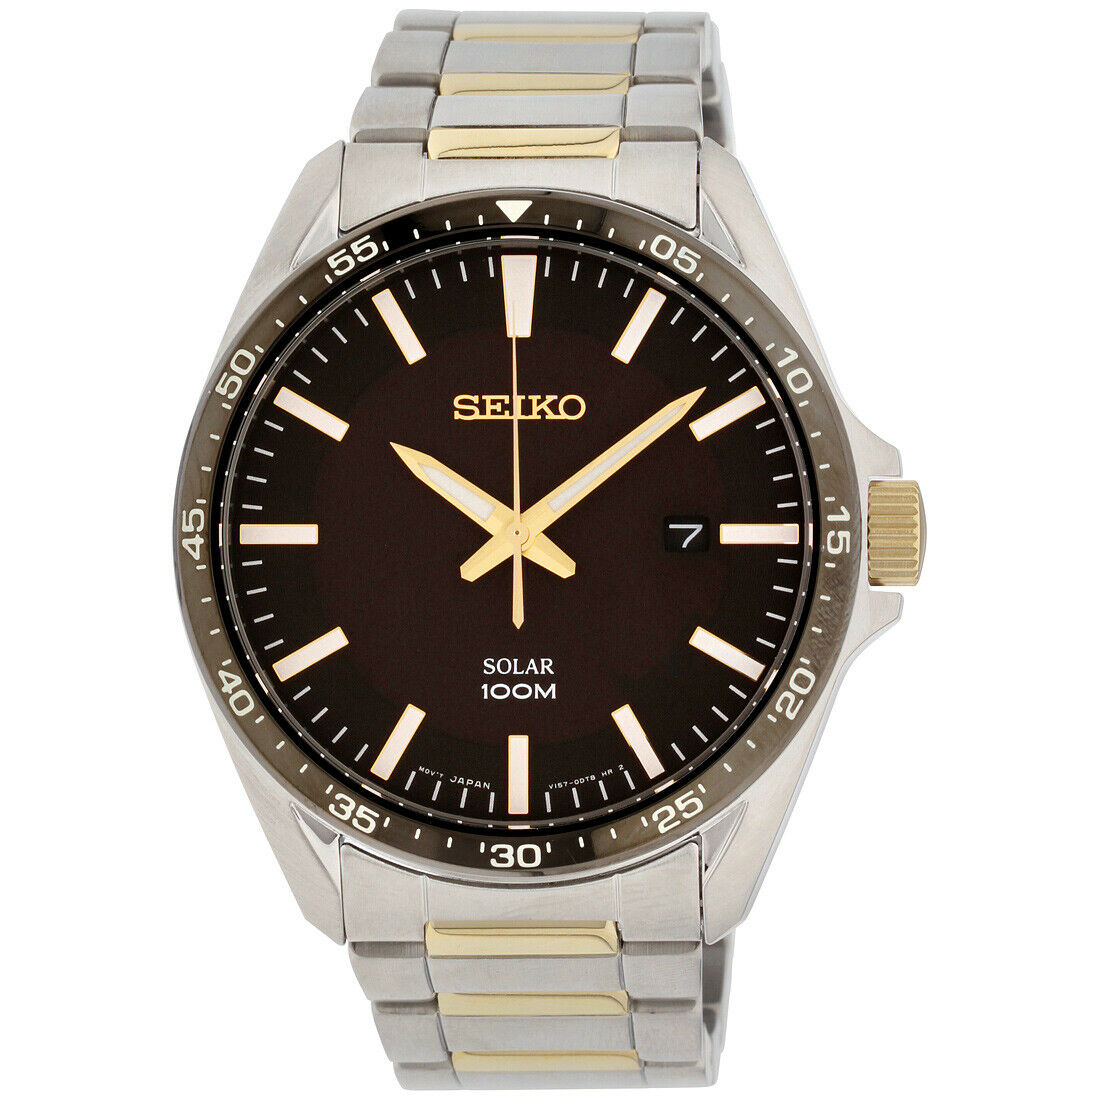 Seiko Men's Analog Solar 100m Two Tone Stainless Steel Watch SNE485